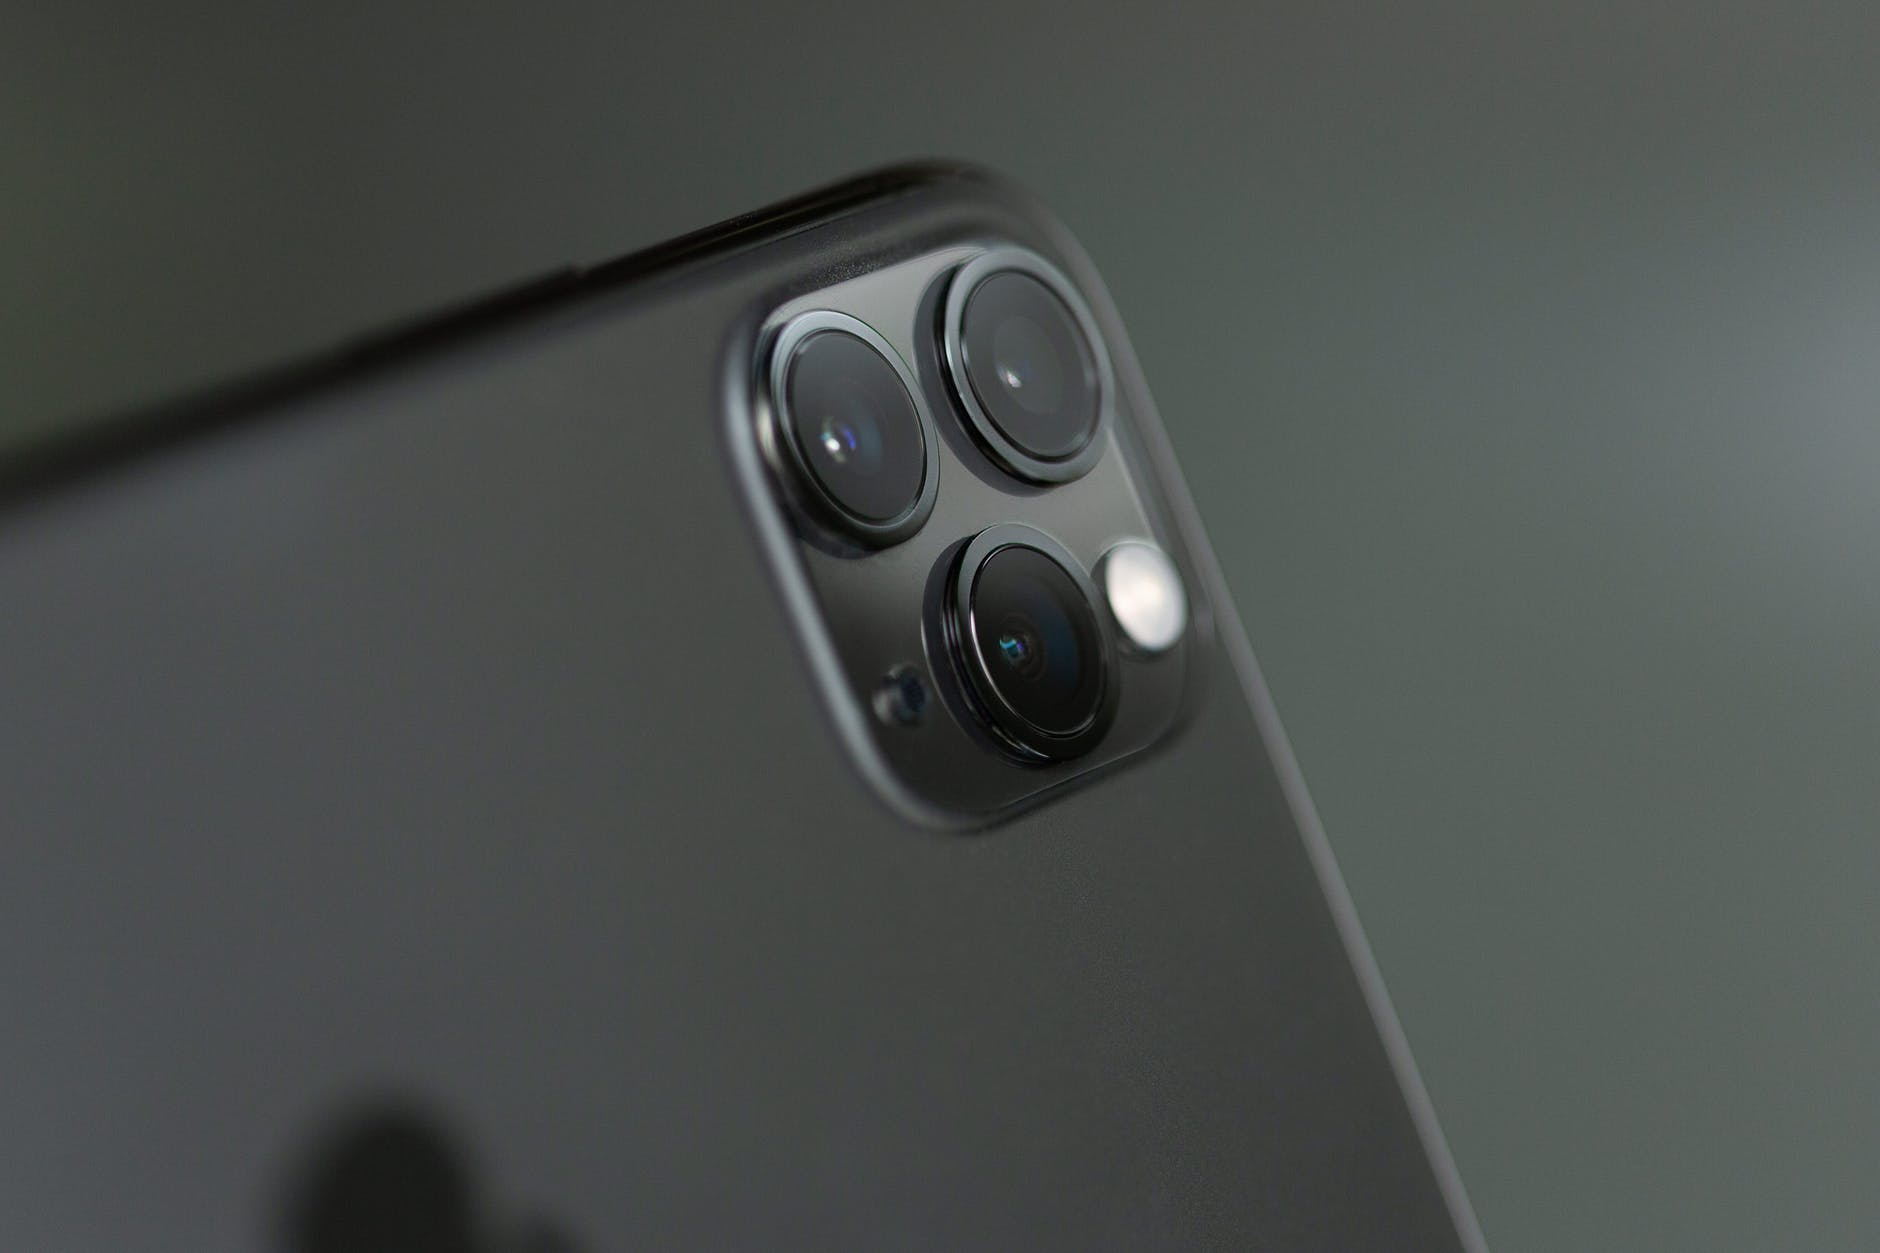 close up phography of a grey iphone xi